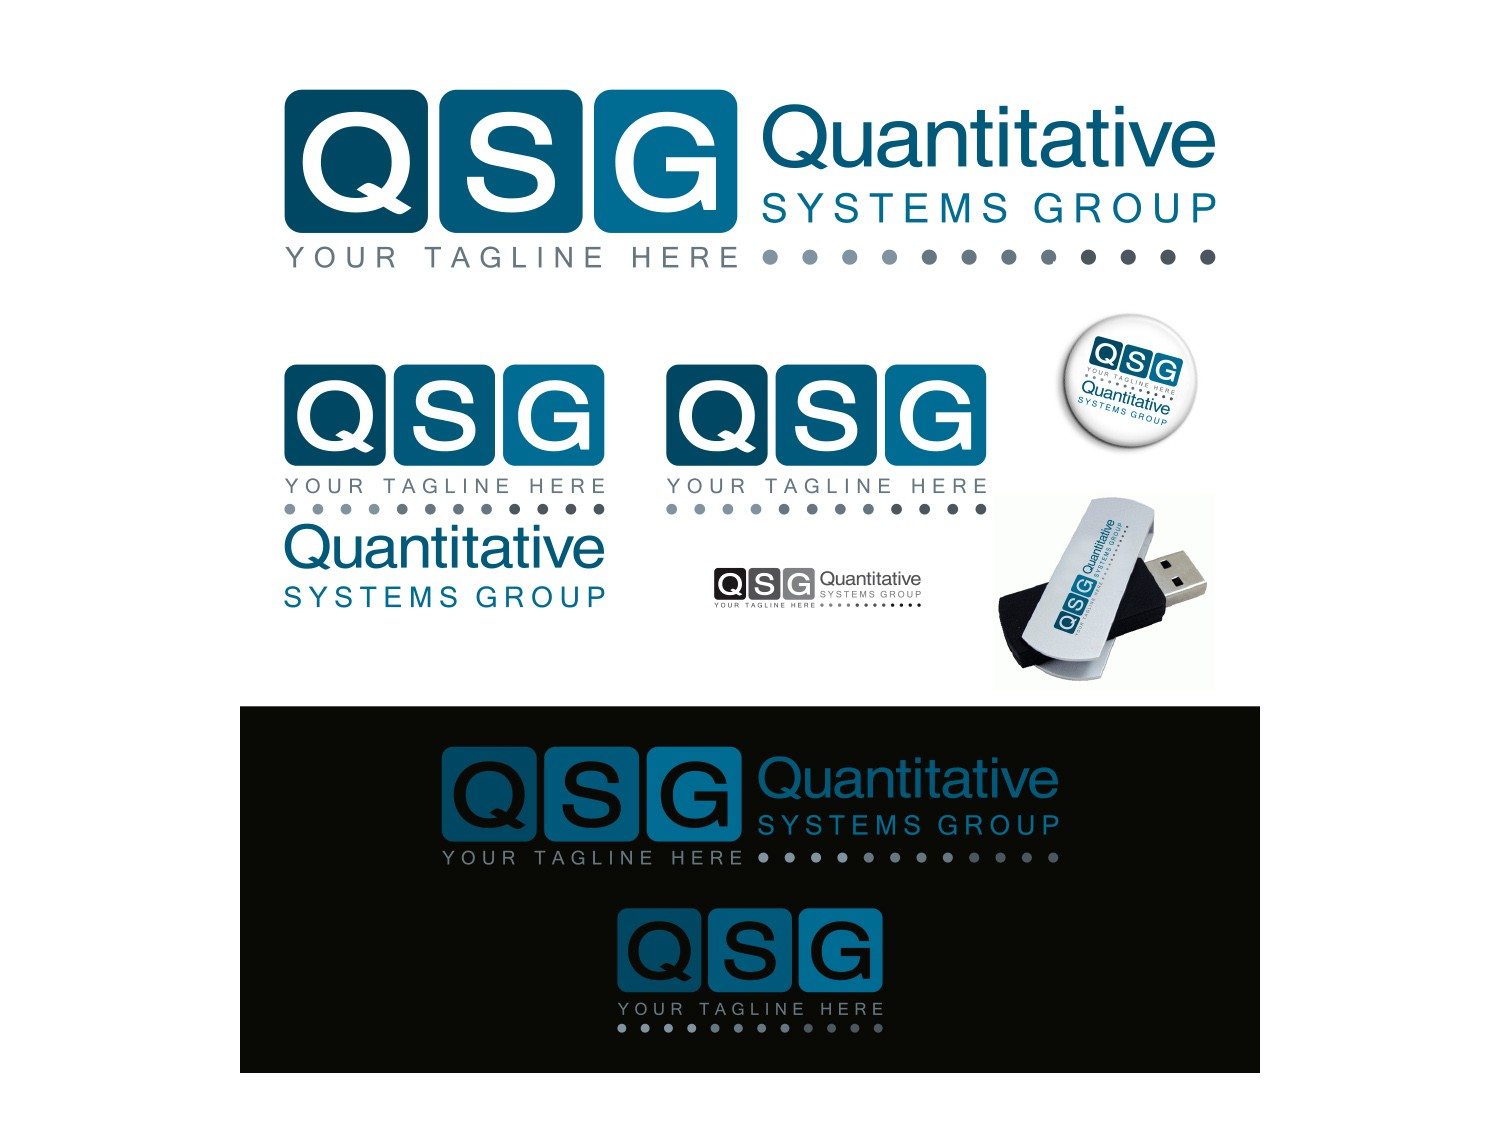 New logo wanted for Quantitative Systems Group